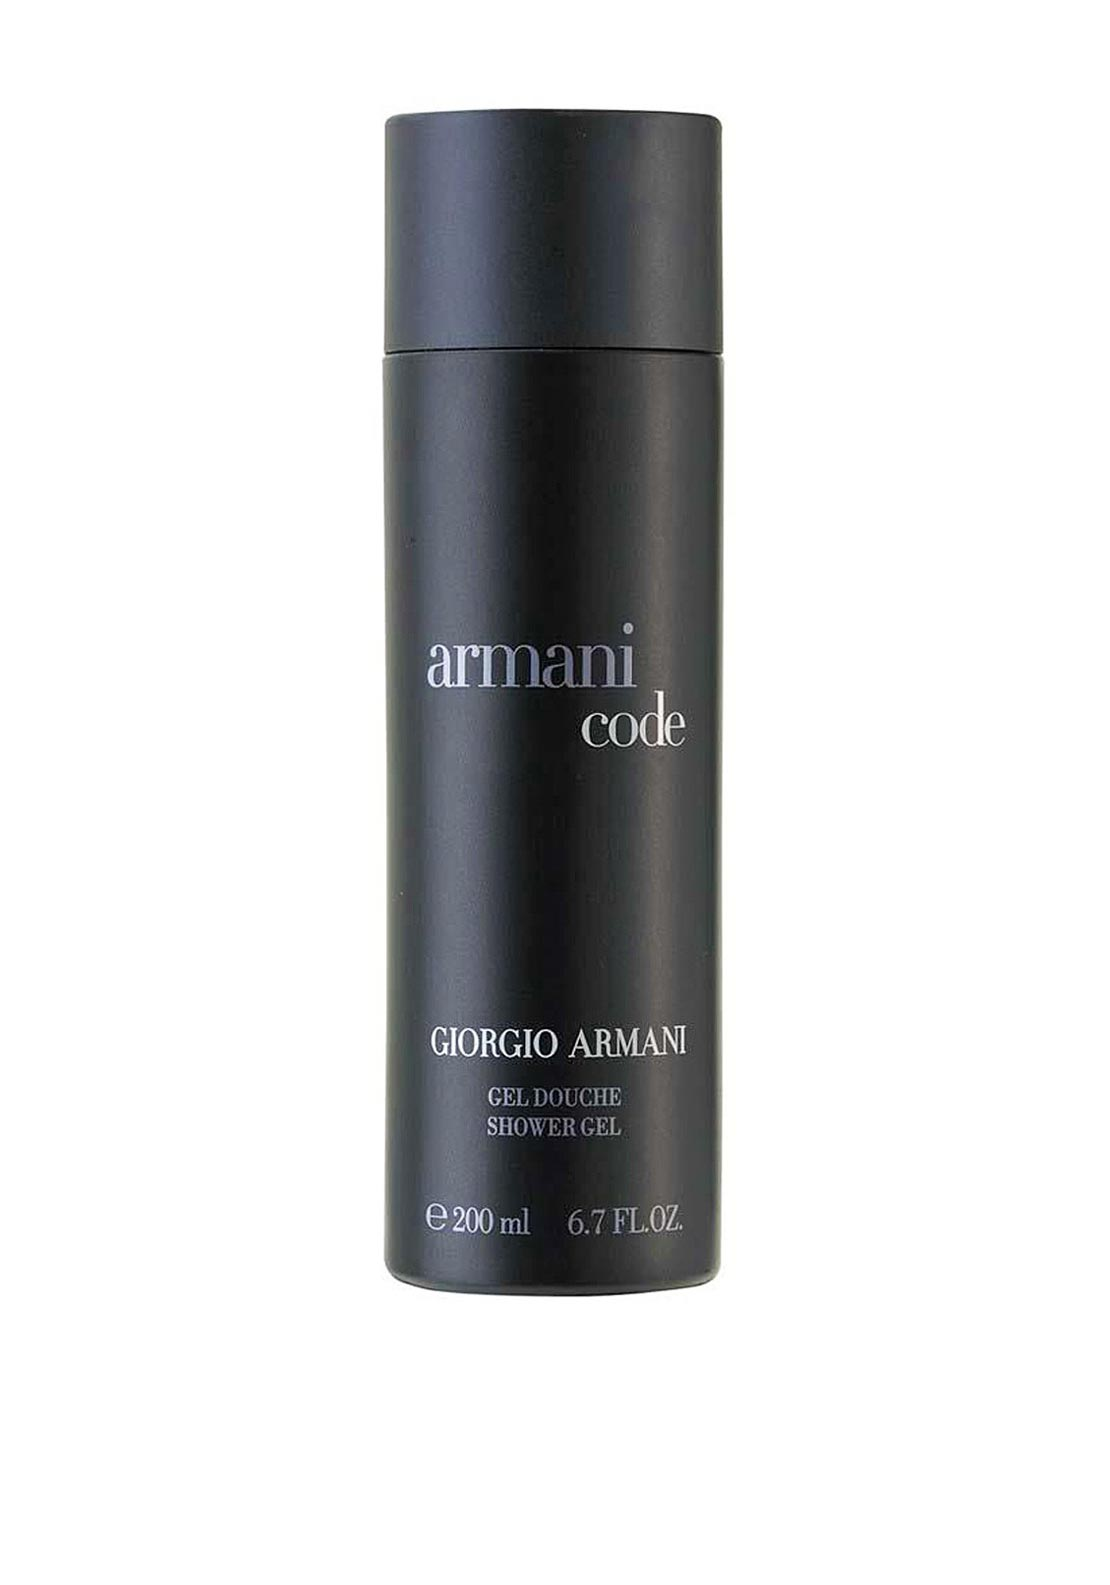 Armani Code Giorgio Armani Shower Gel, 200ml